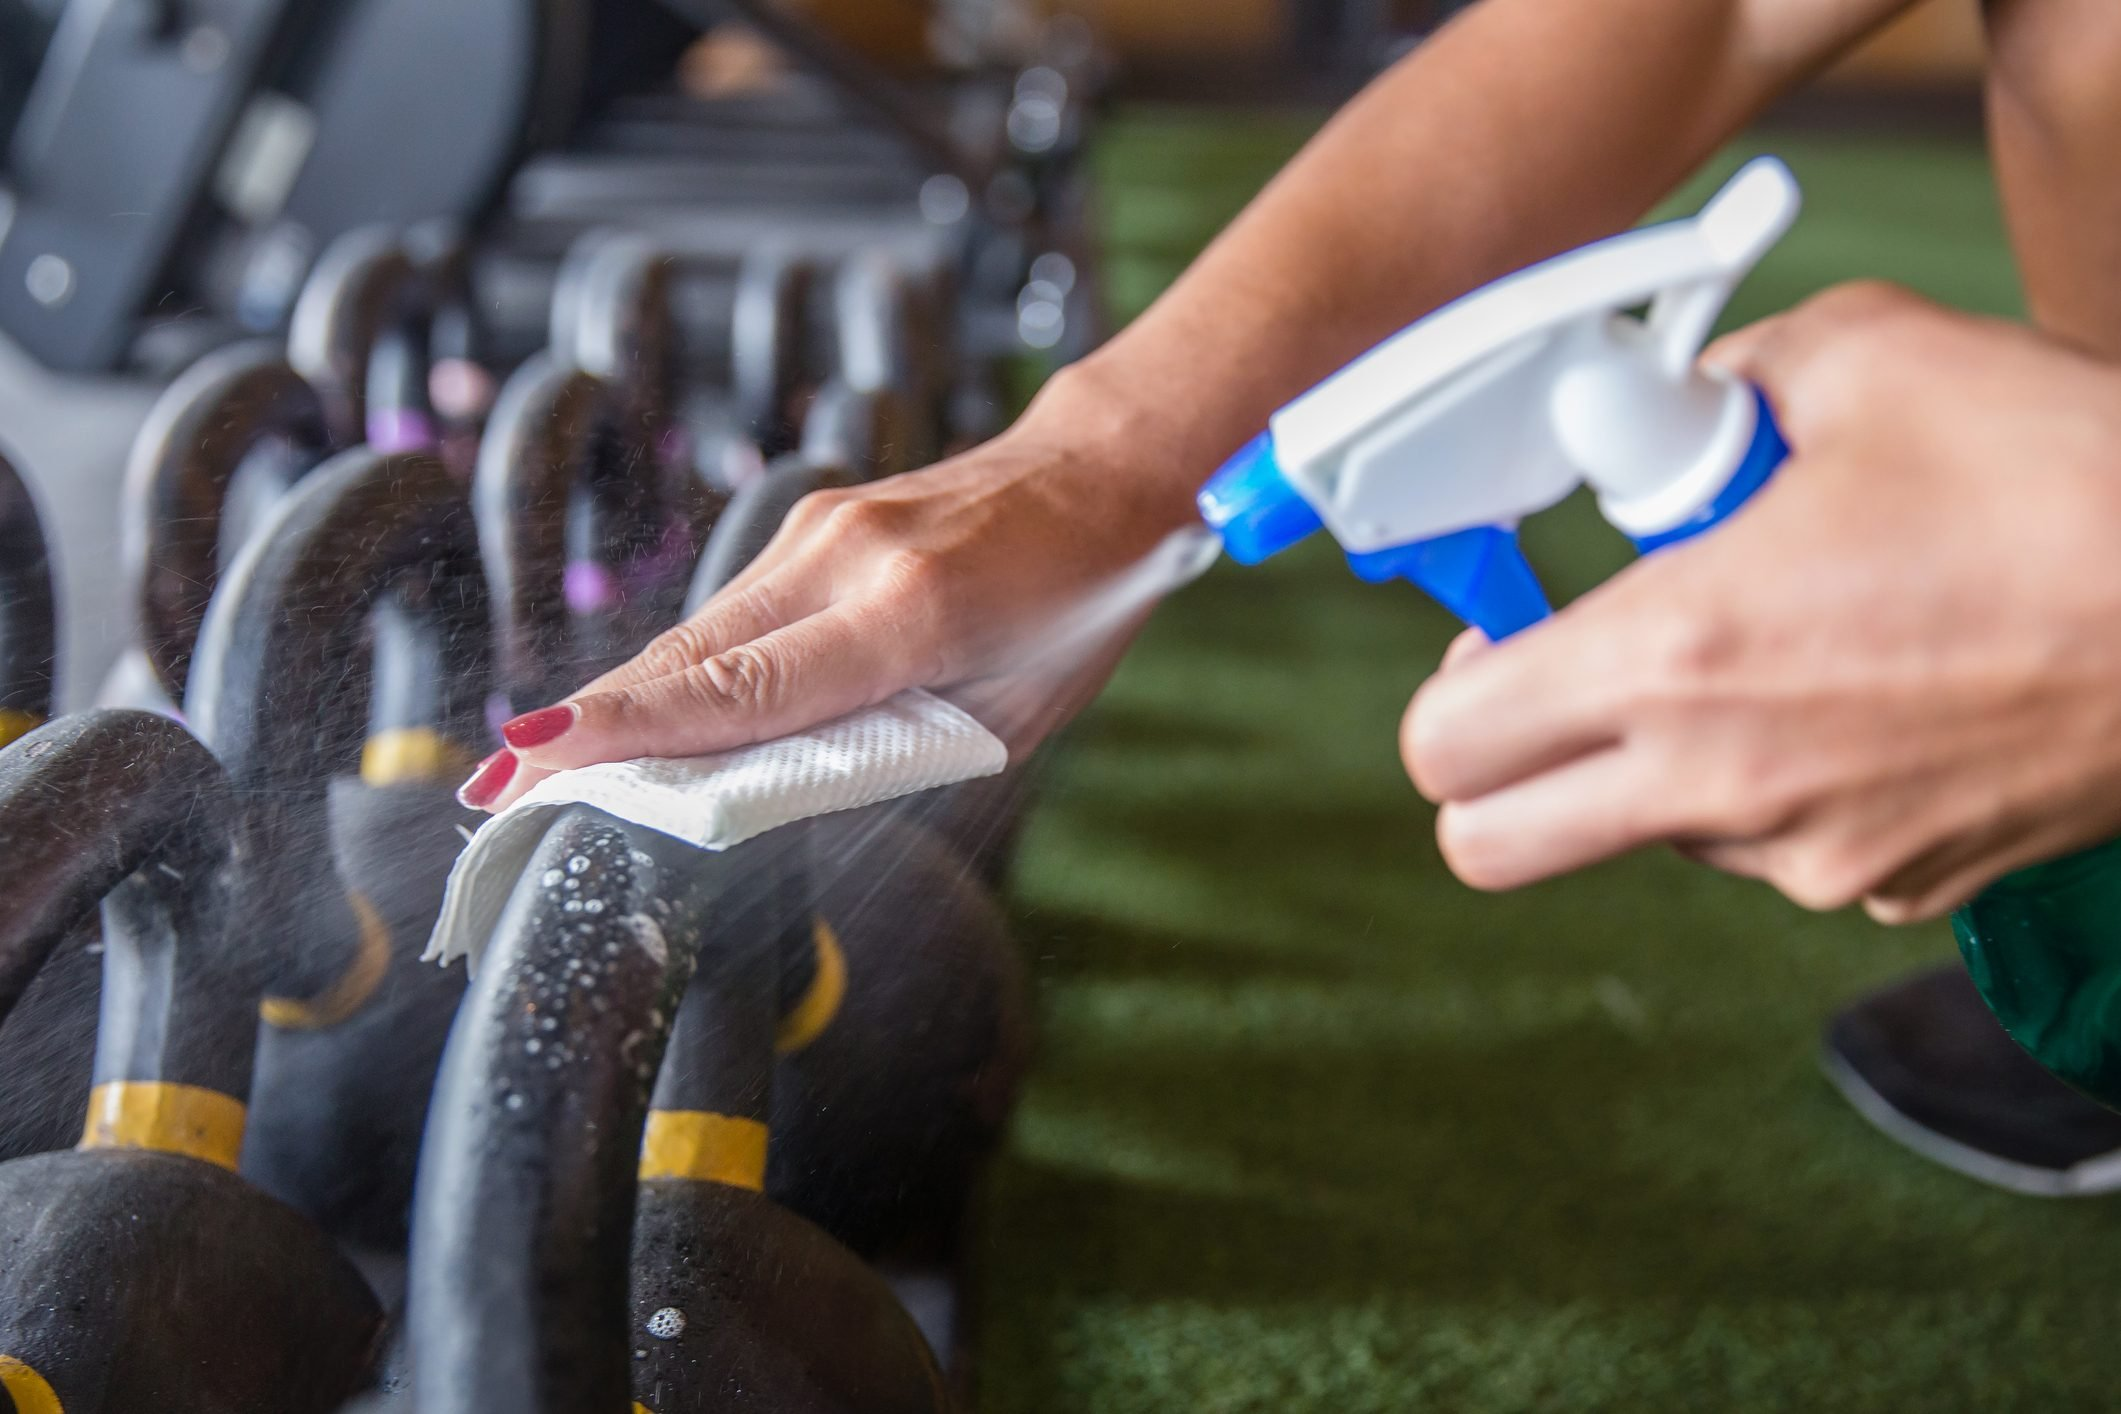 Athlete clean and sanitize fitness equipment before use